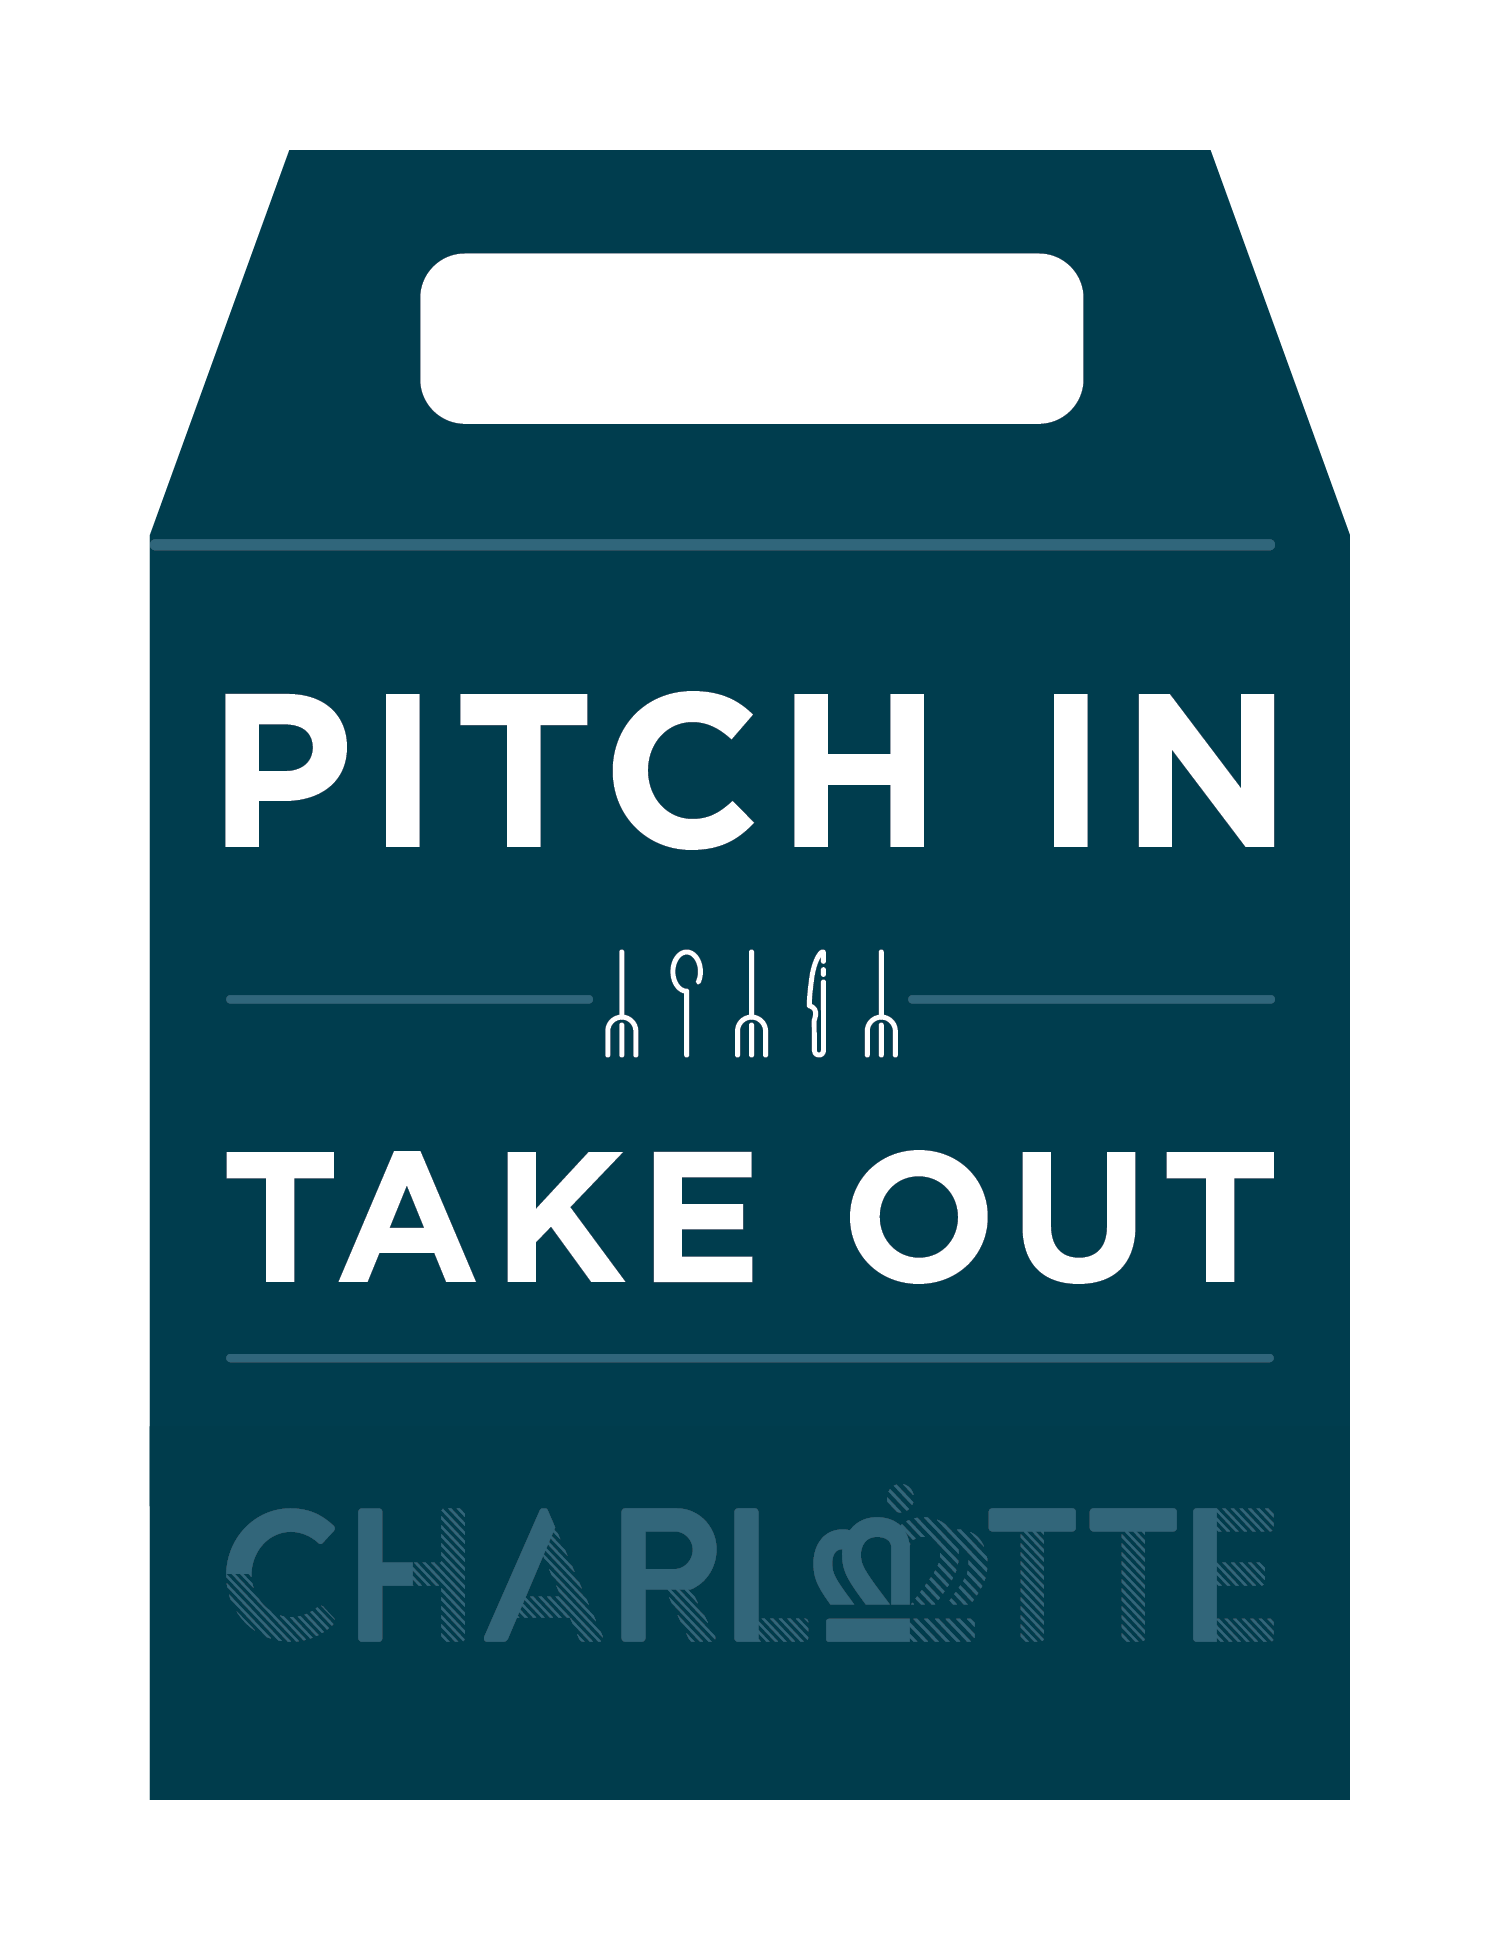 Pitch in by taking out. Find local restaurants offering curbside pickup and delivery.